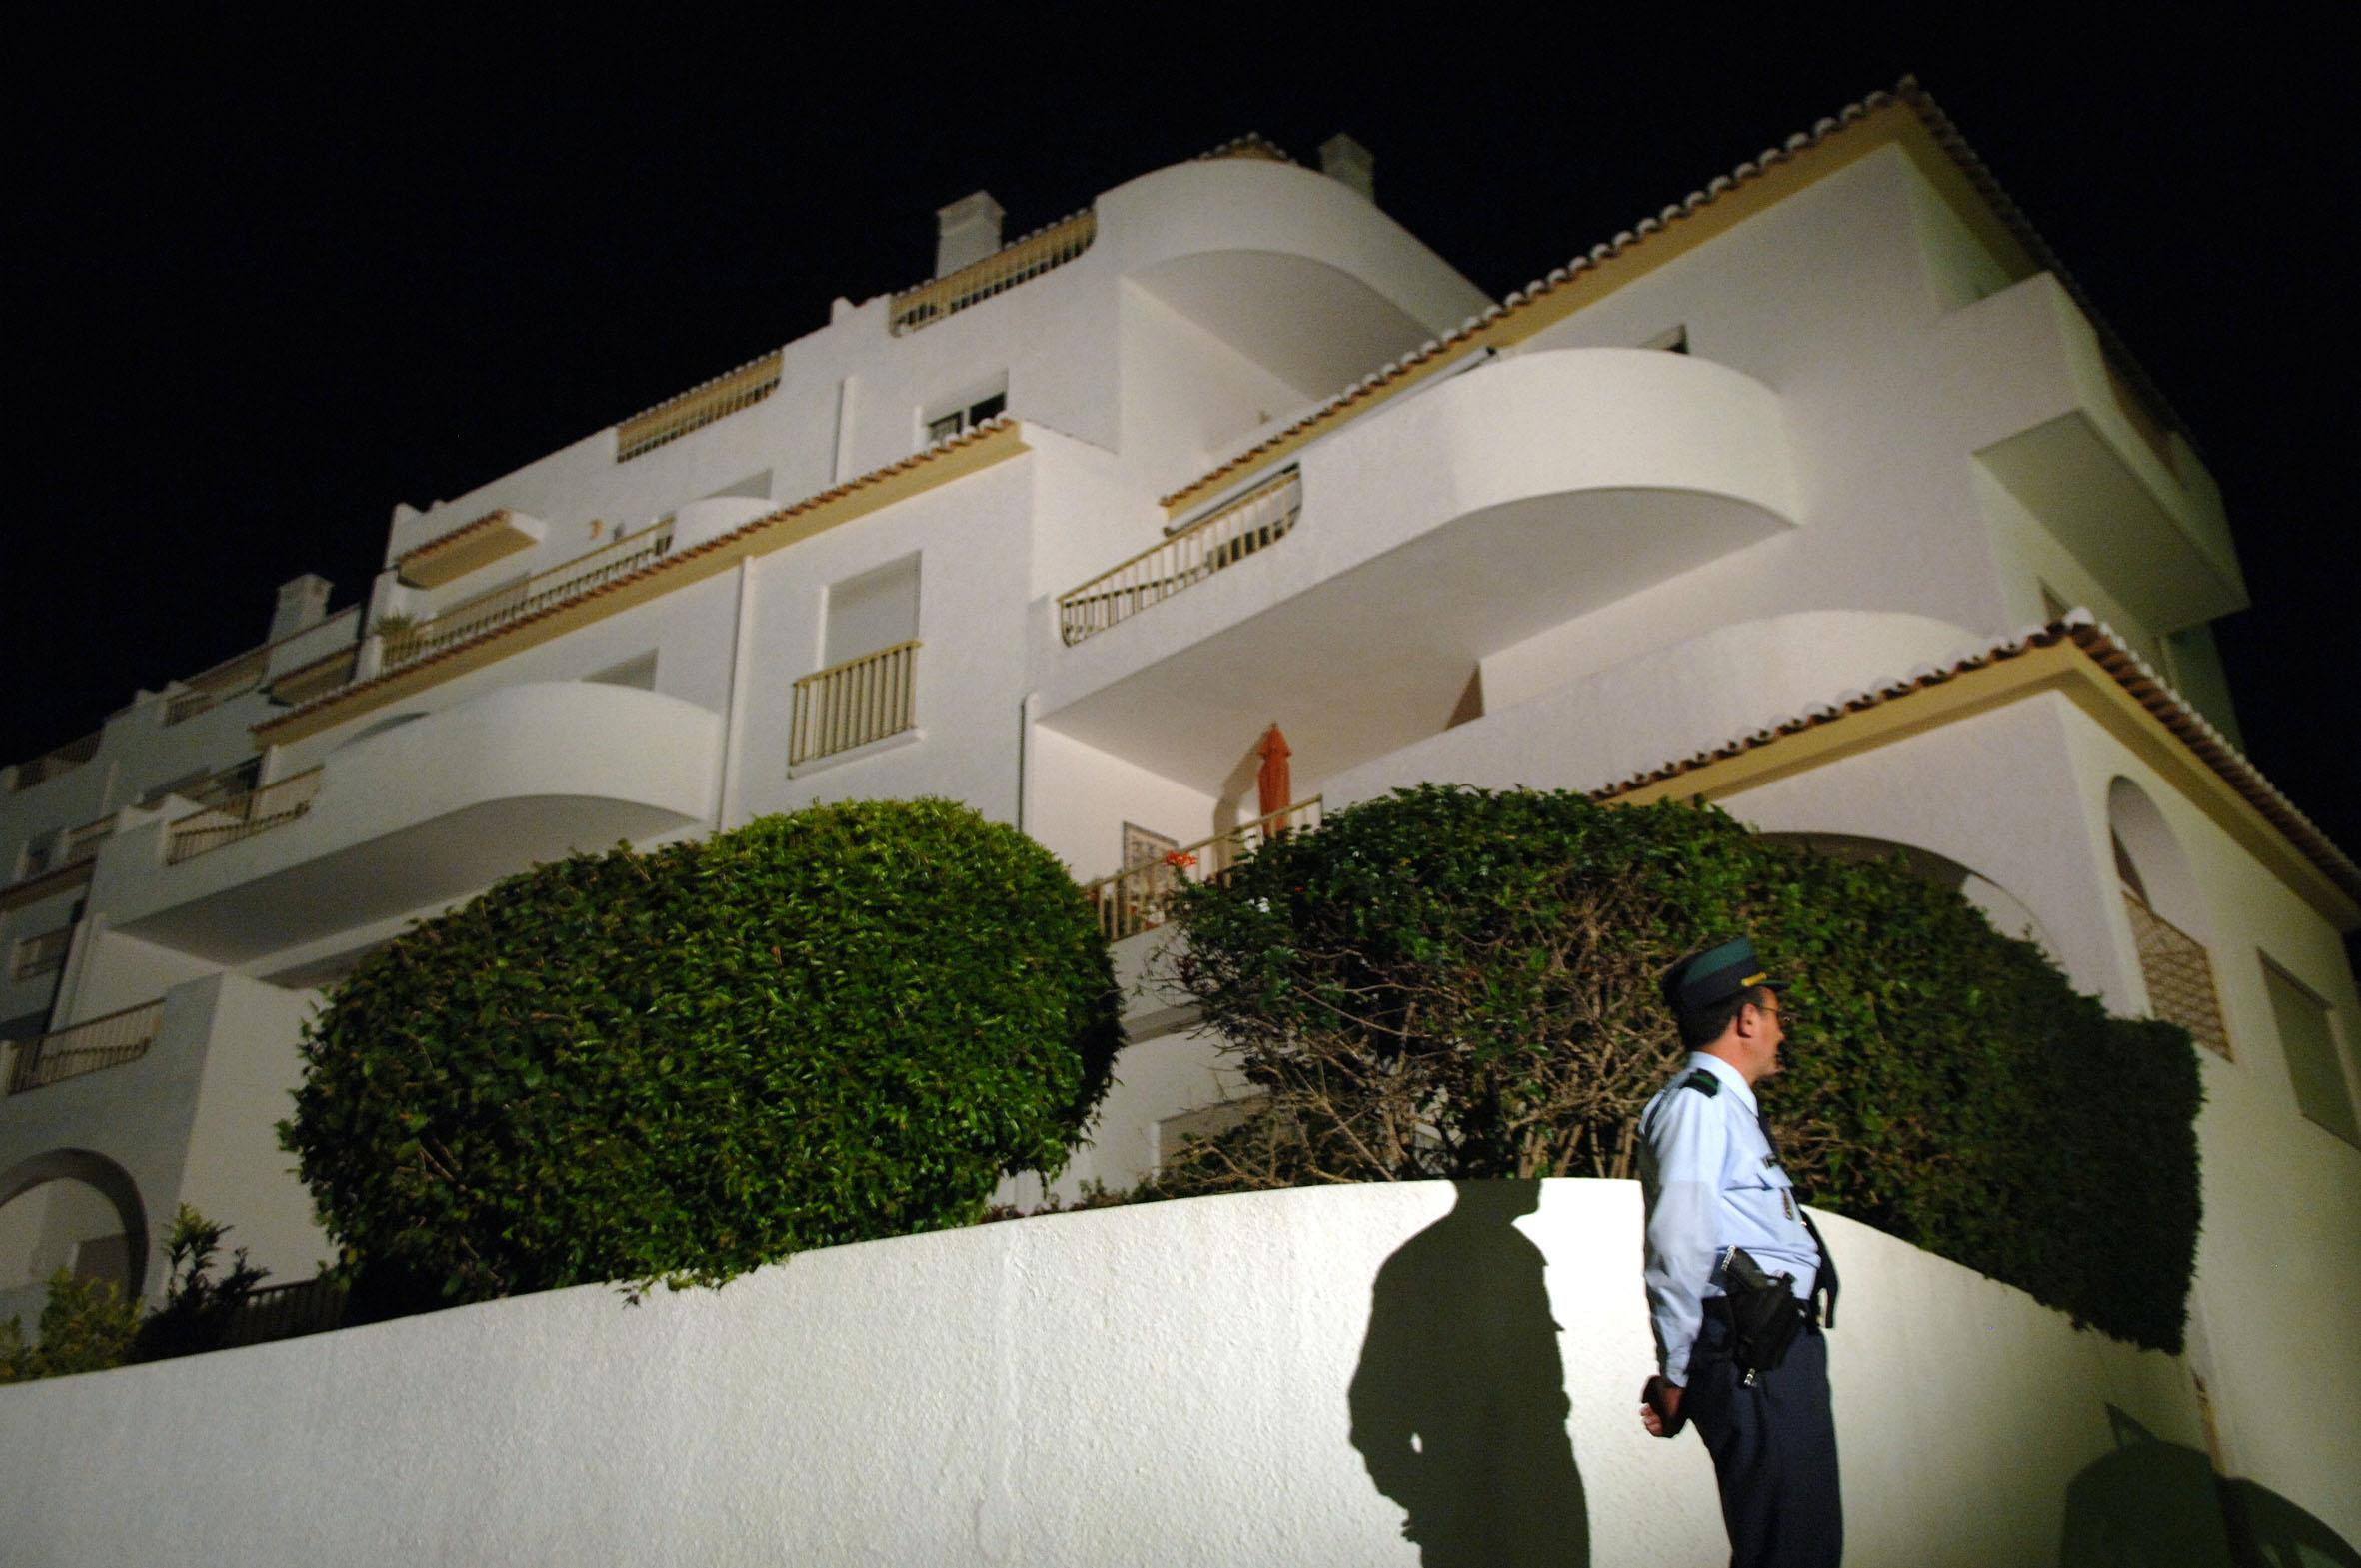 EMBARGOED TO 1915 WEDNESDAY JUNE 3 File photo dated 8/5/2007 of a police officer stands outside the apartment at the Ocean Club Hotel in Luz, Portugal, where Madeleine McCann went missing. A German prisoner has been identified as a suspect in the disappearance of Madeleine, detectives have revealed. The Metropolitan Police have not named the man, 43, who is described as white with short blond hair, possibly fair, and about 6ft tall with a slim build.